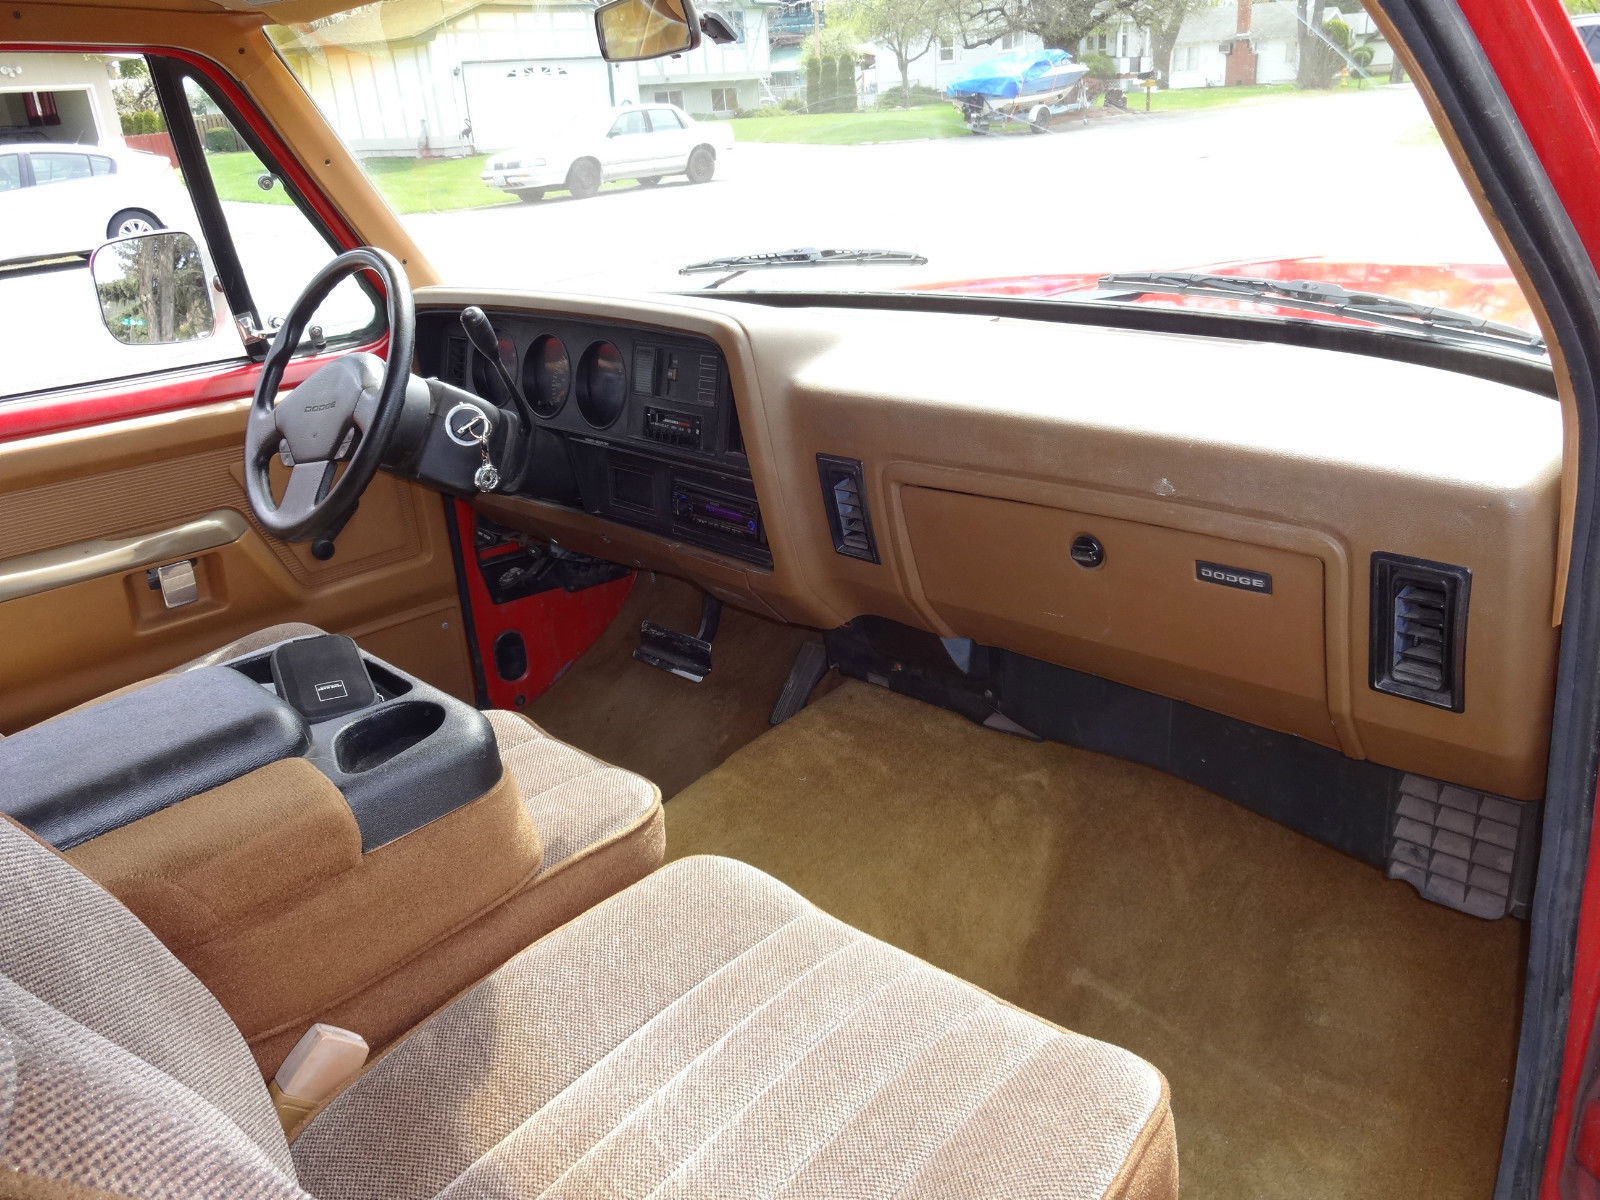 1993 2wd Ramcharger For Sale In Spokane Washington United States For Sale Photos Technical Specifications Description